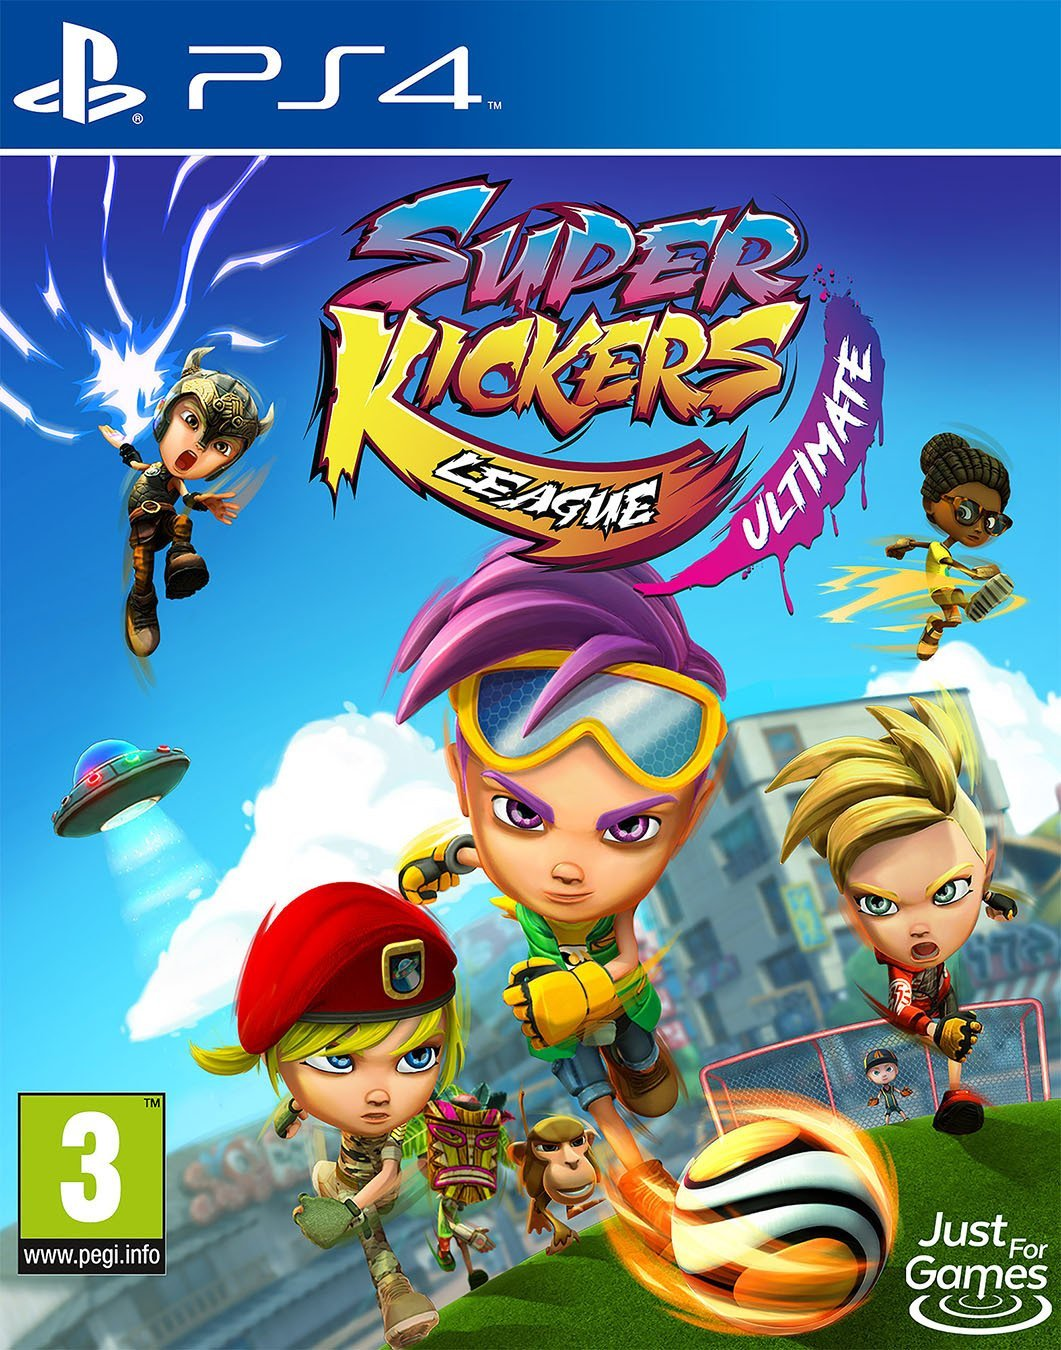 Super Kickers League Ultimate PS4 Game